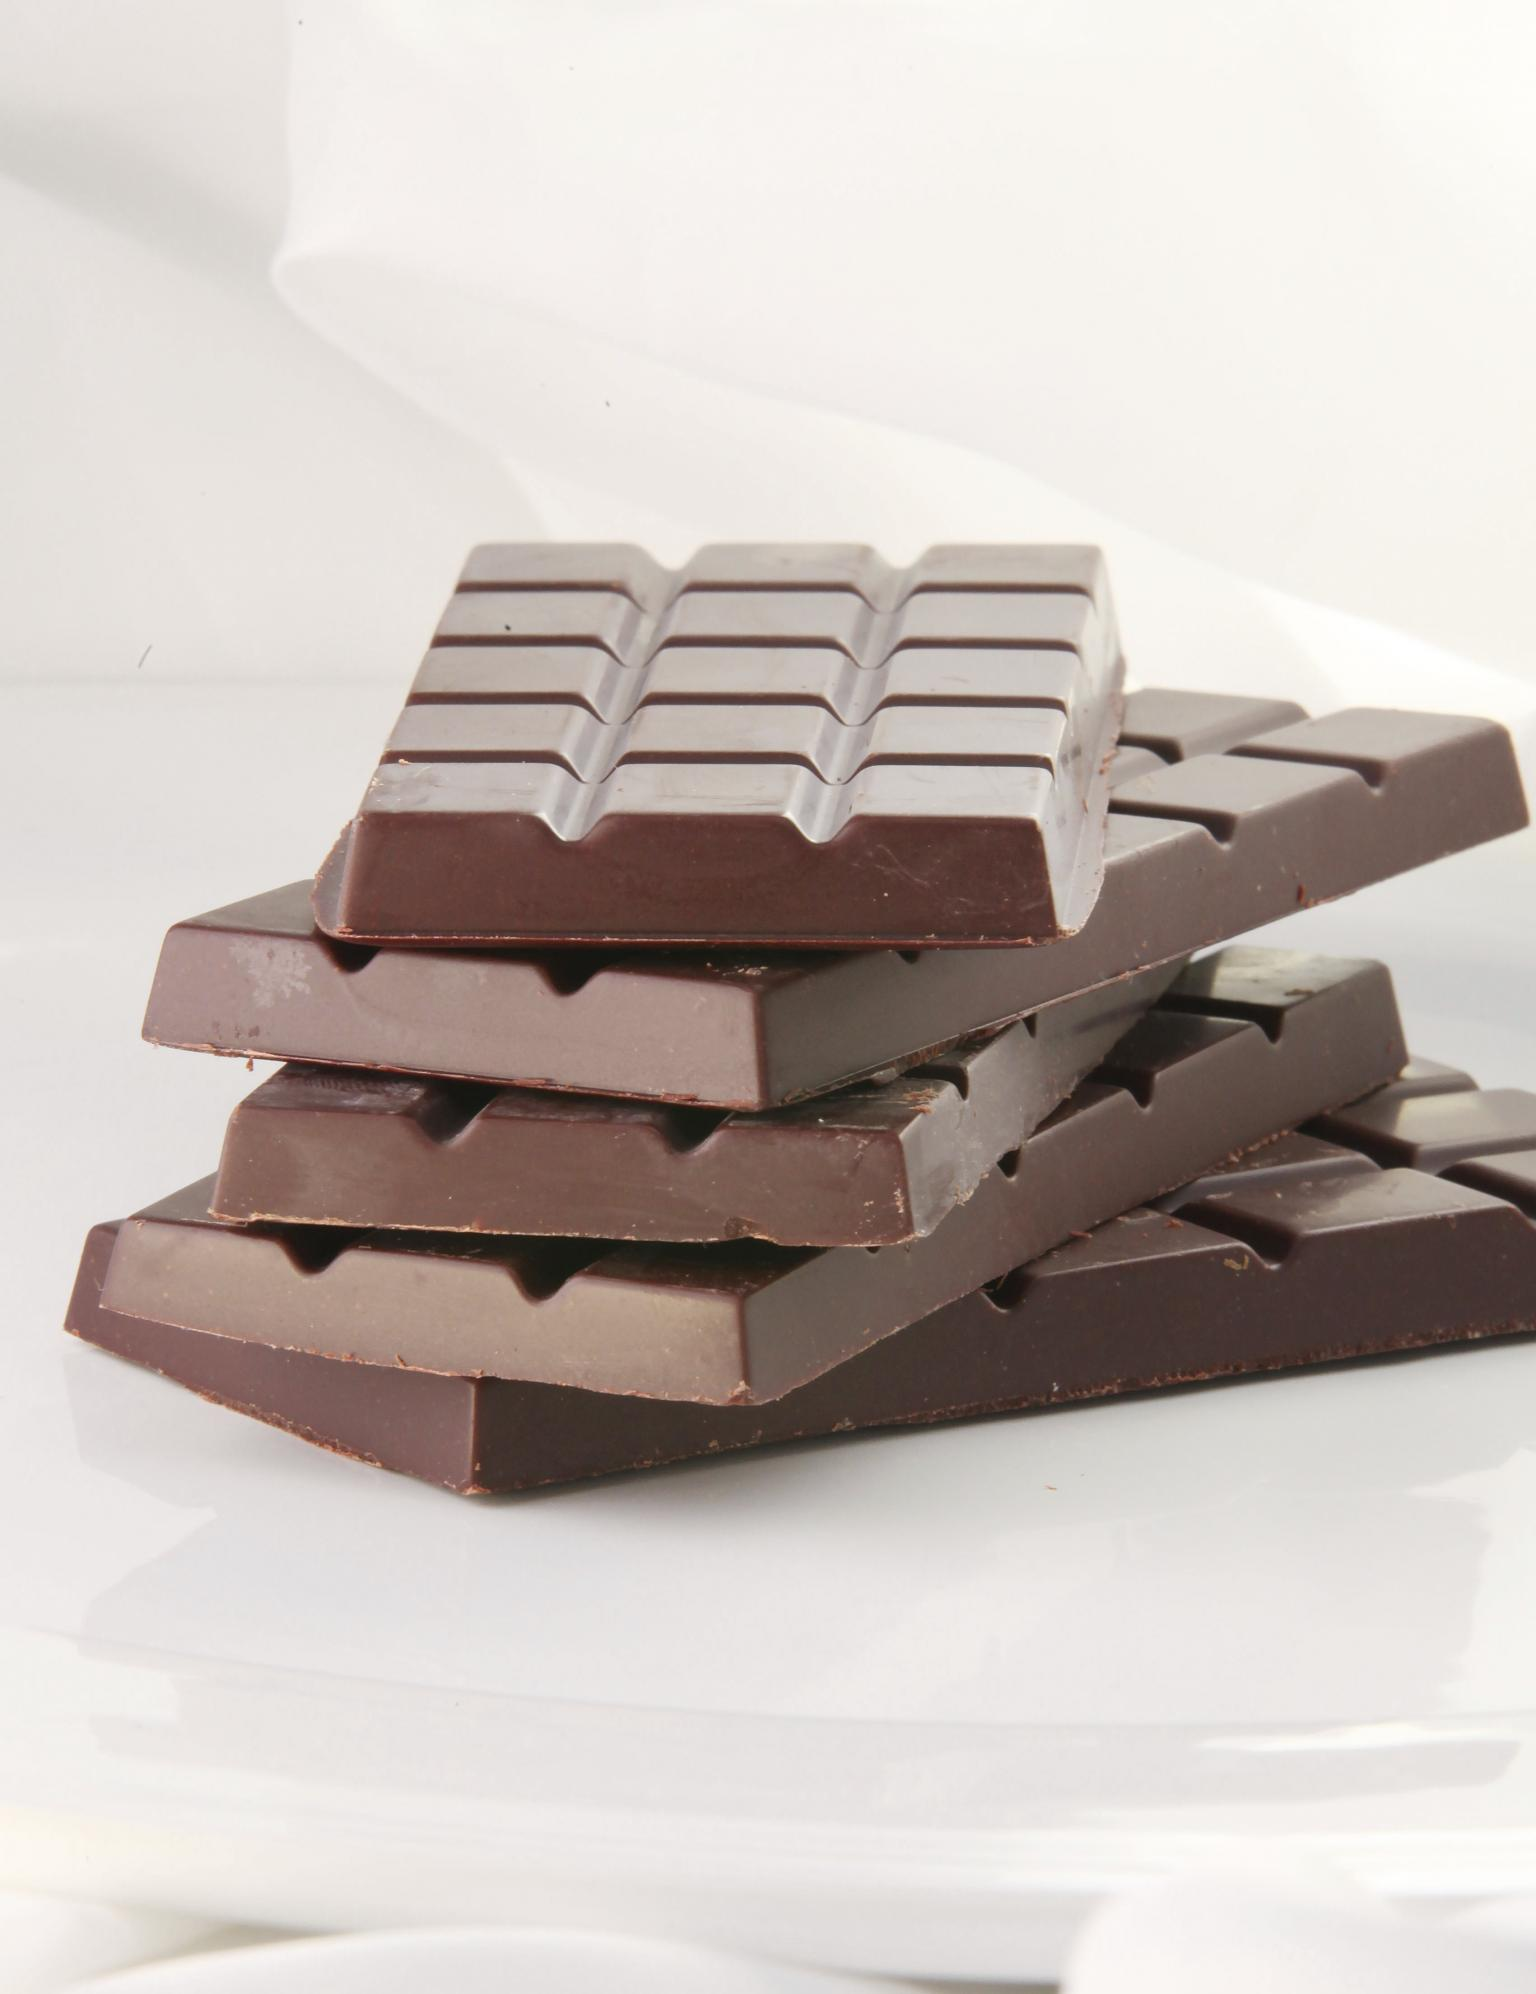 A machine with a fixed frequency is fine when consistently checking the same product daily, like a chocolate bar